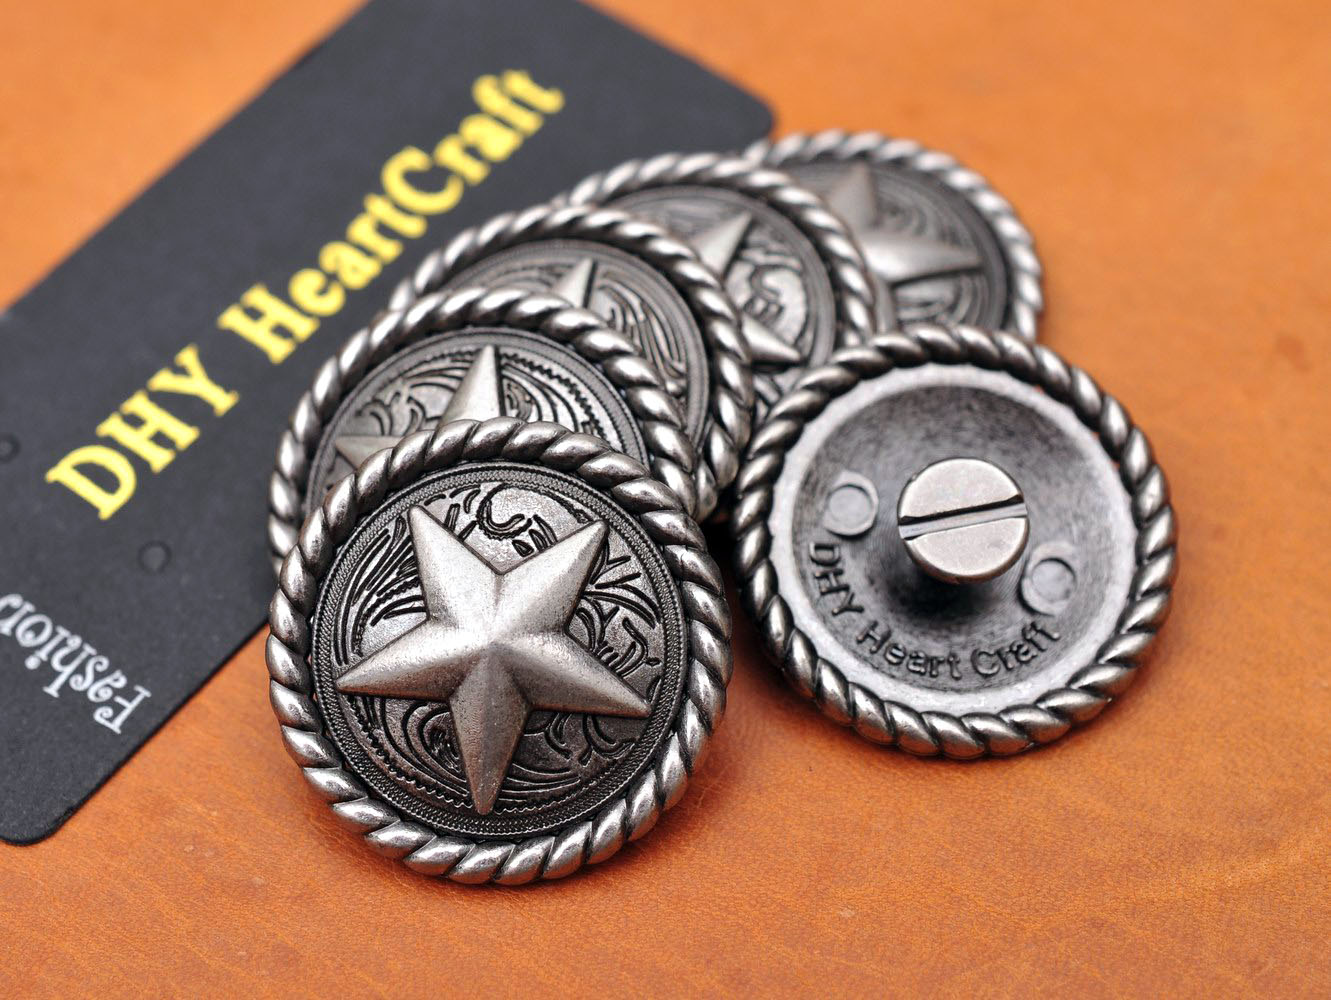 10pcs VINTAGE Silver ROUND ROPE SIDE TEXAS RANGER STAR WESTERN SADDLE LEATHERCRAFT METAL LEATHER CONCHOS 1-1/4